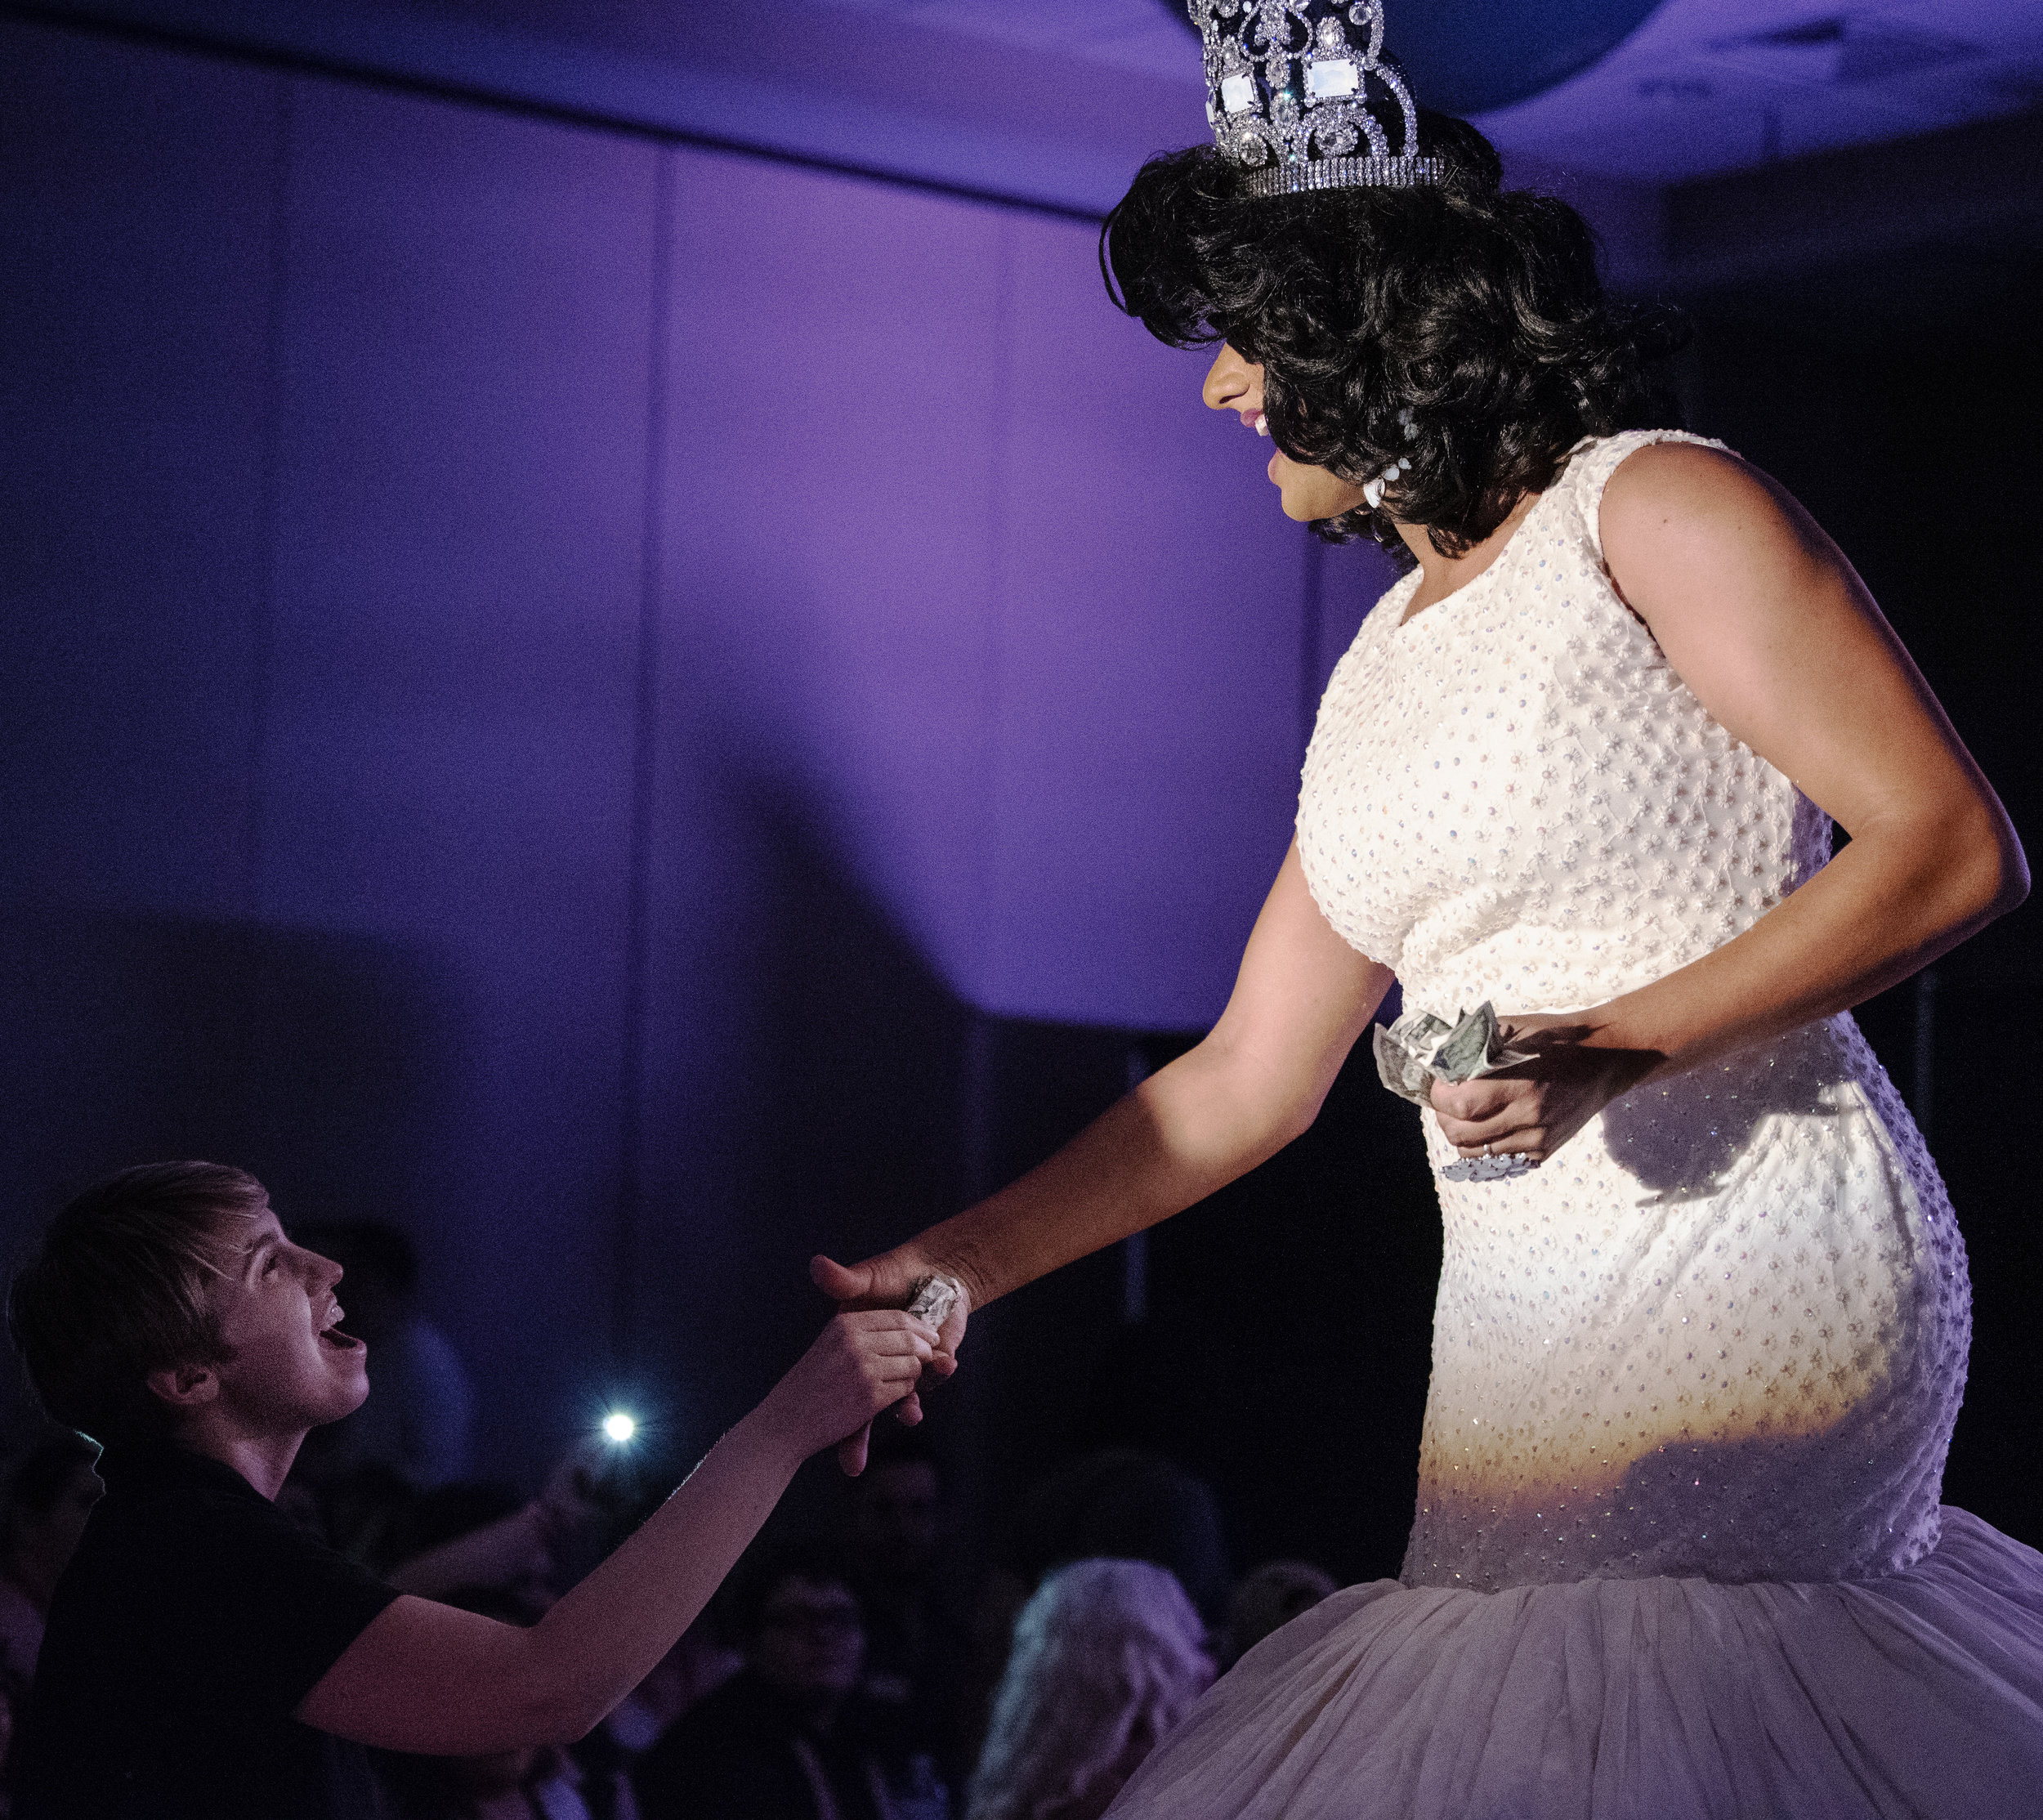 Knight grabs the hand of an audience member during the WKU Drag Show.